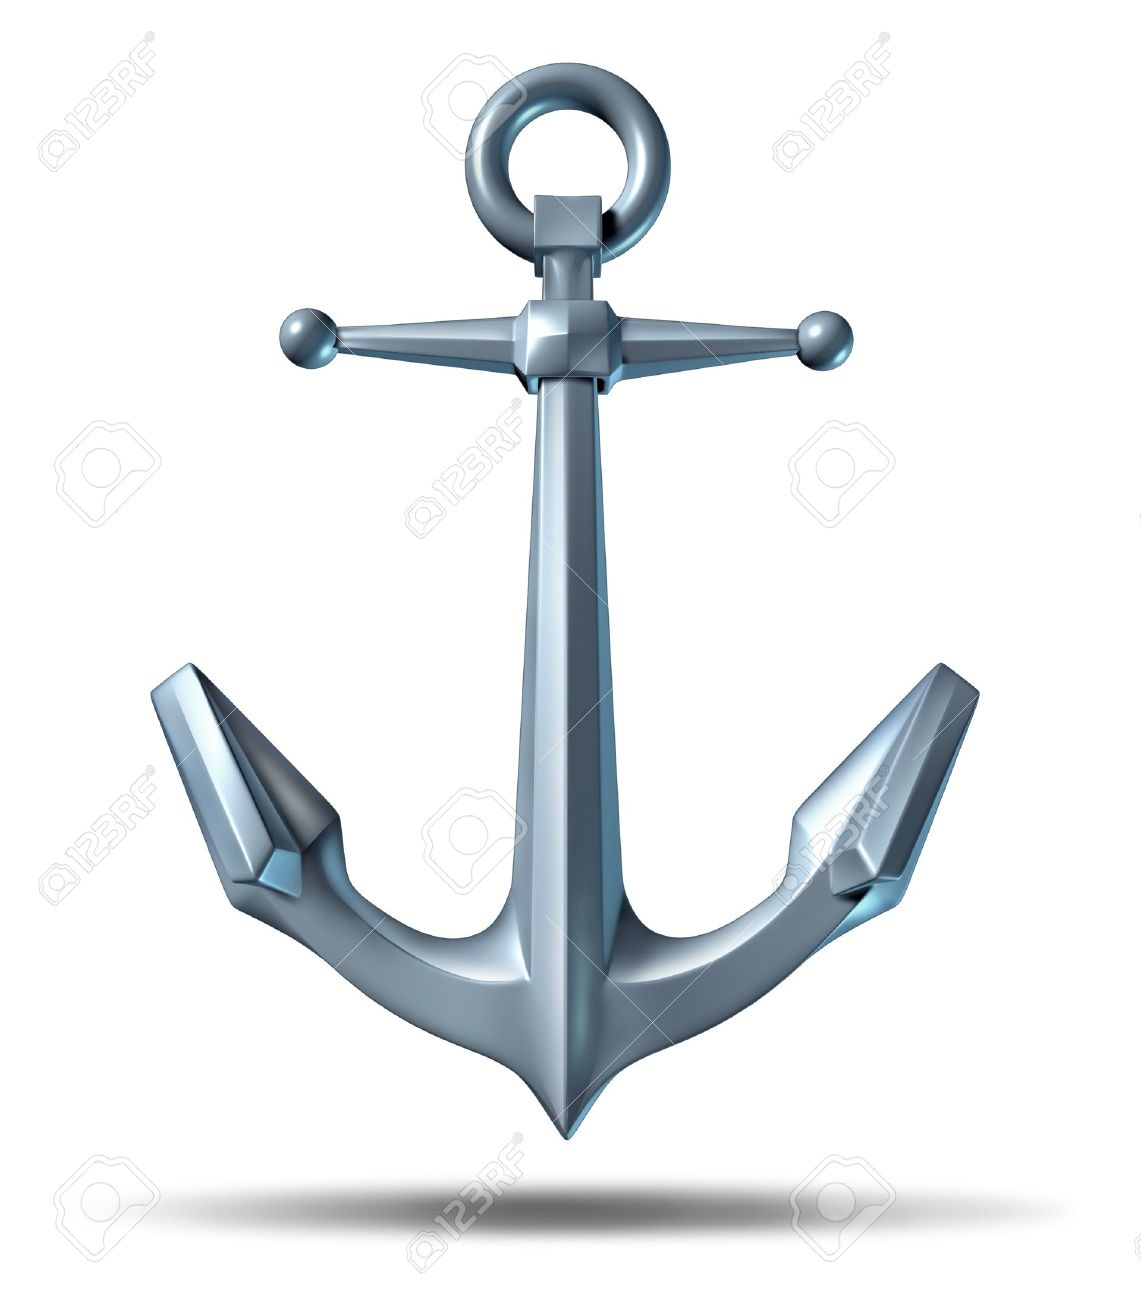 Anchor on a white background with a metal heavy nautical structure as a marine icon representing strength reliability and stability Stock Photo - 12667574